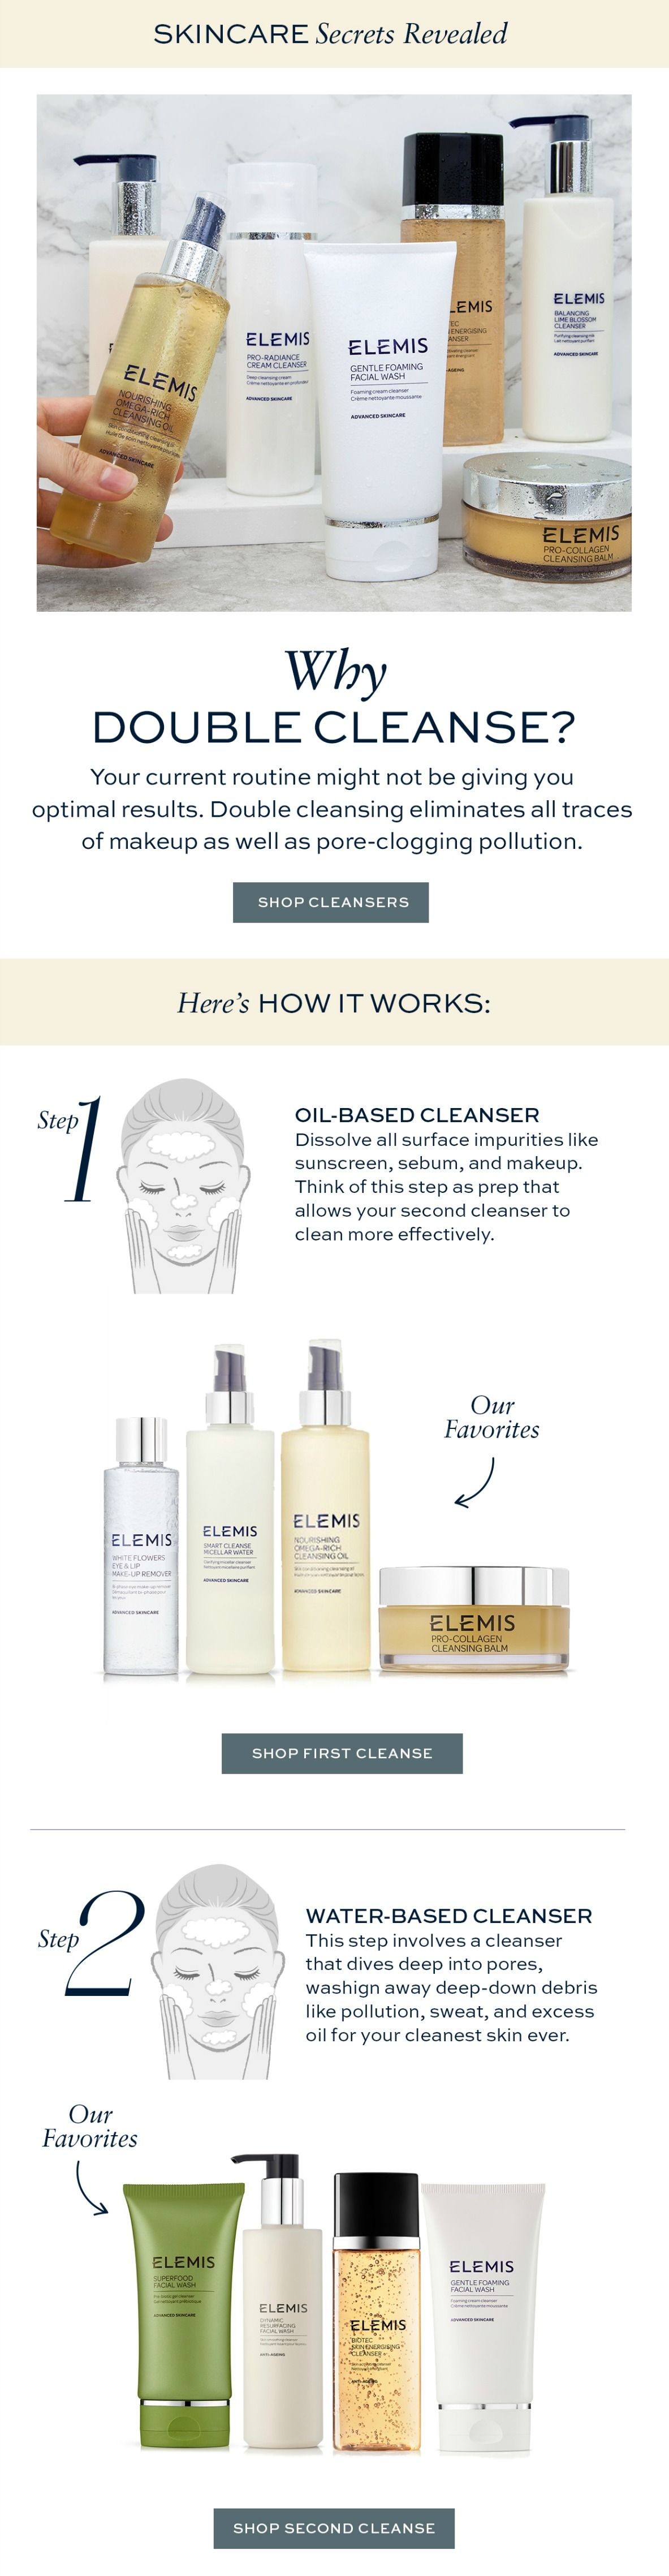 How To Double Cleanse With Elemis Best Oil Based Cleanser Best Water Based Cleanser Elemis Face Cleanser Oil Based Cleanser